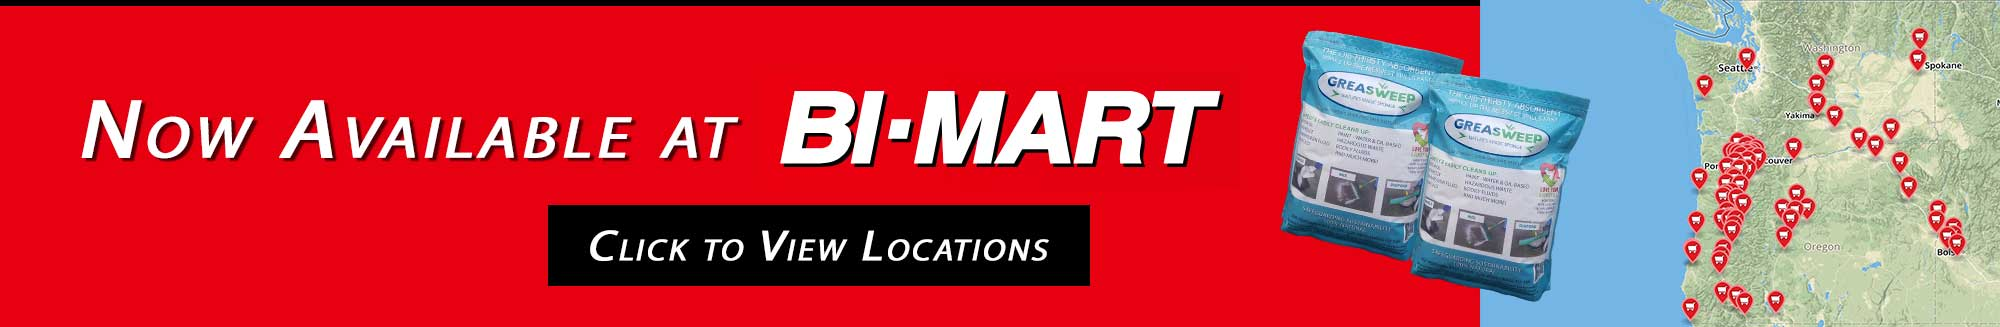 Now Available At Bi-Mart